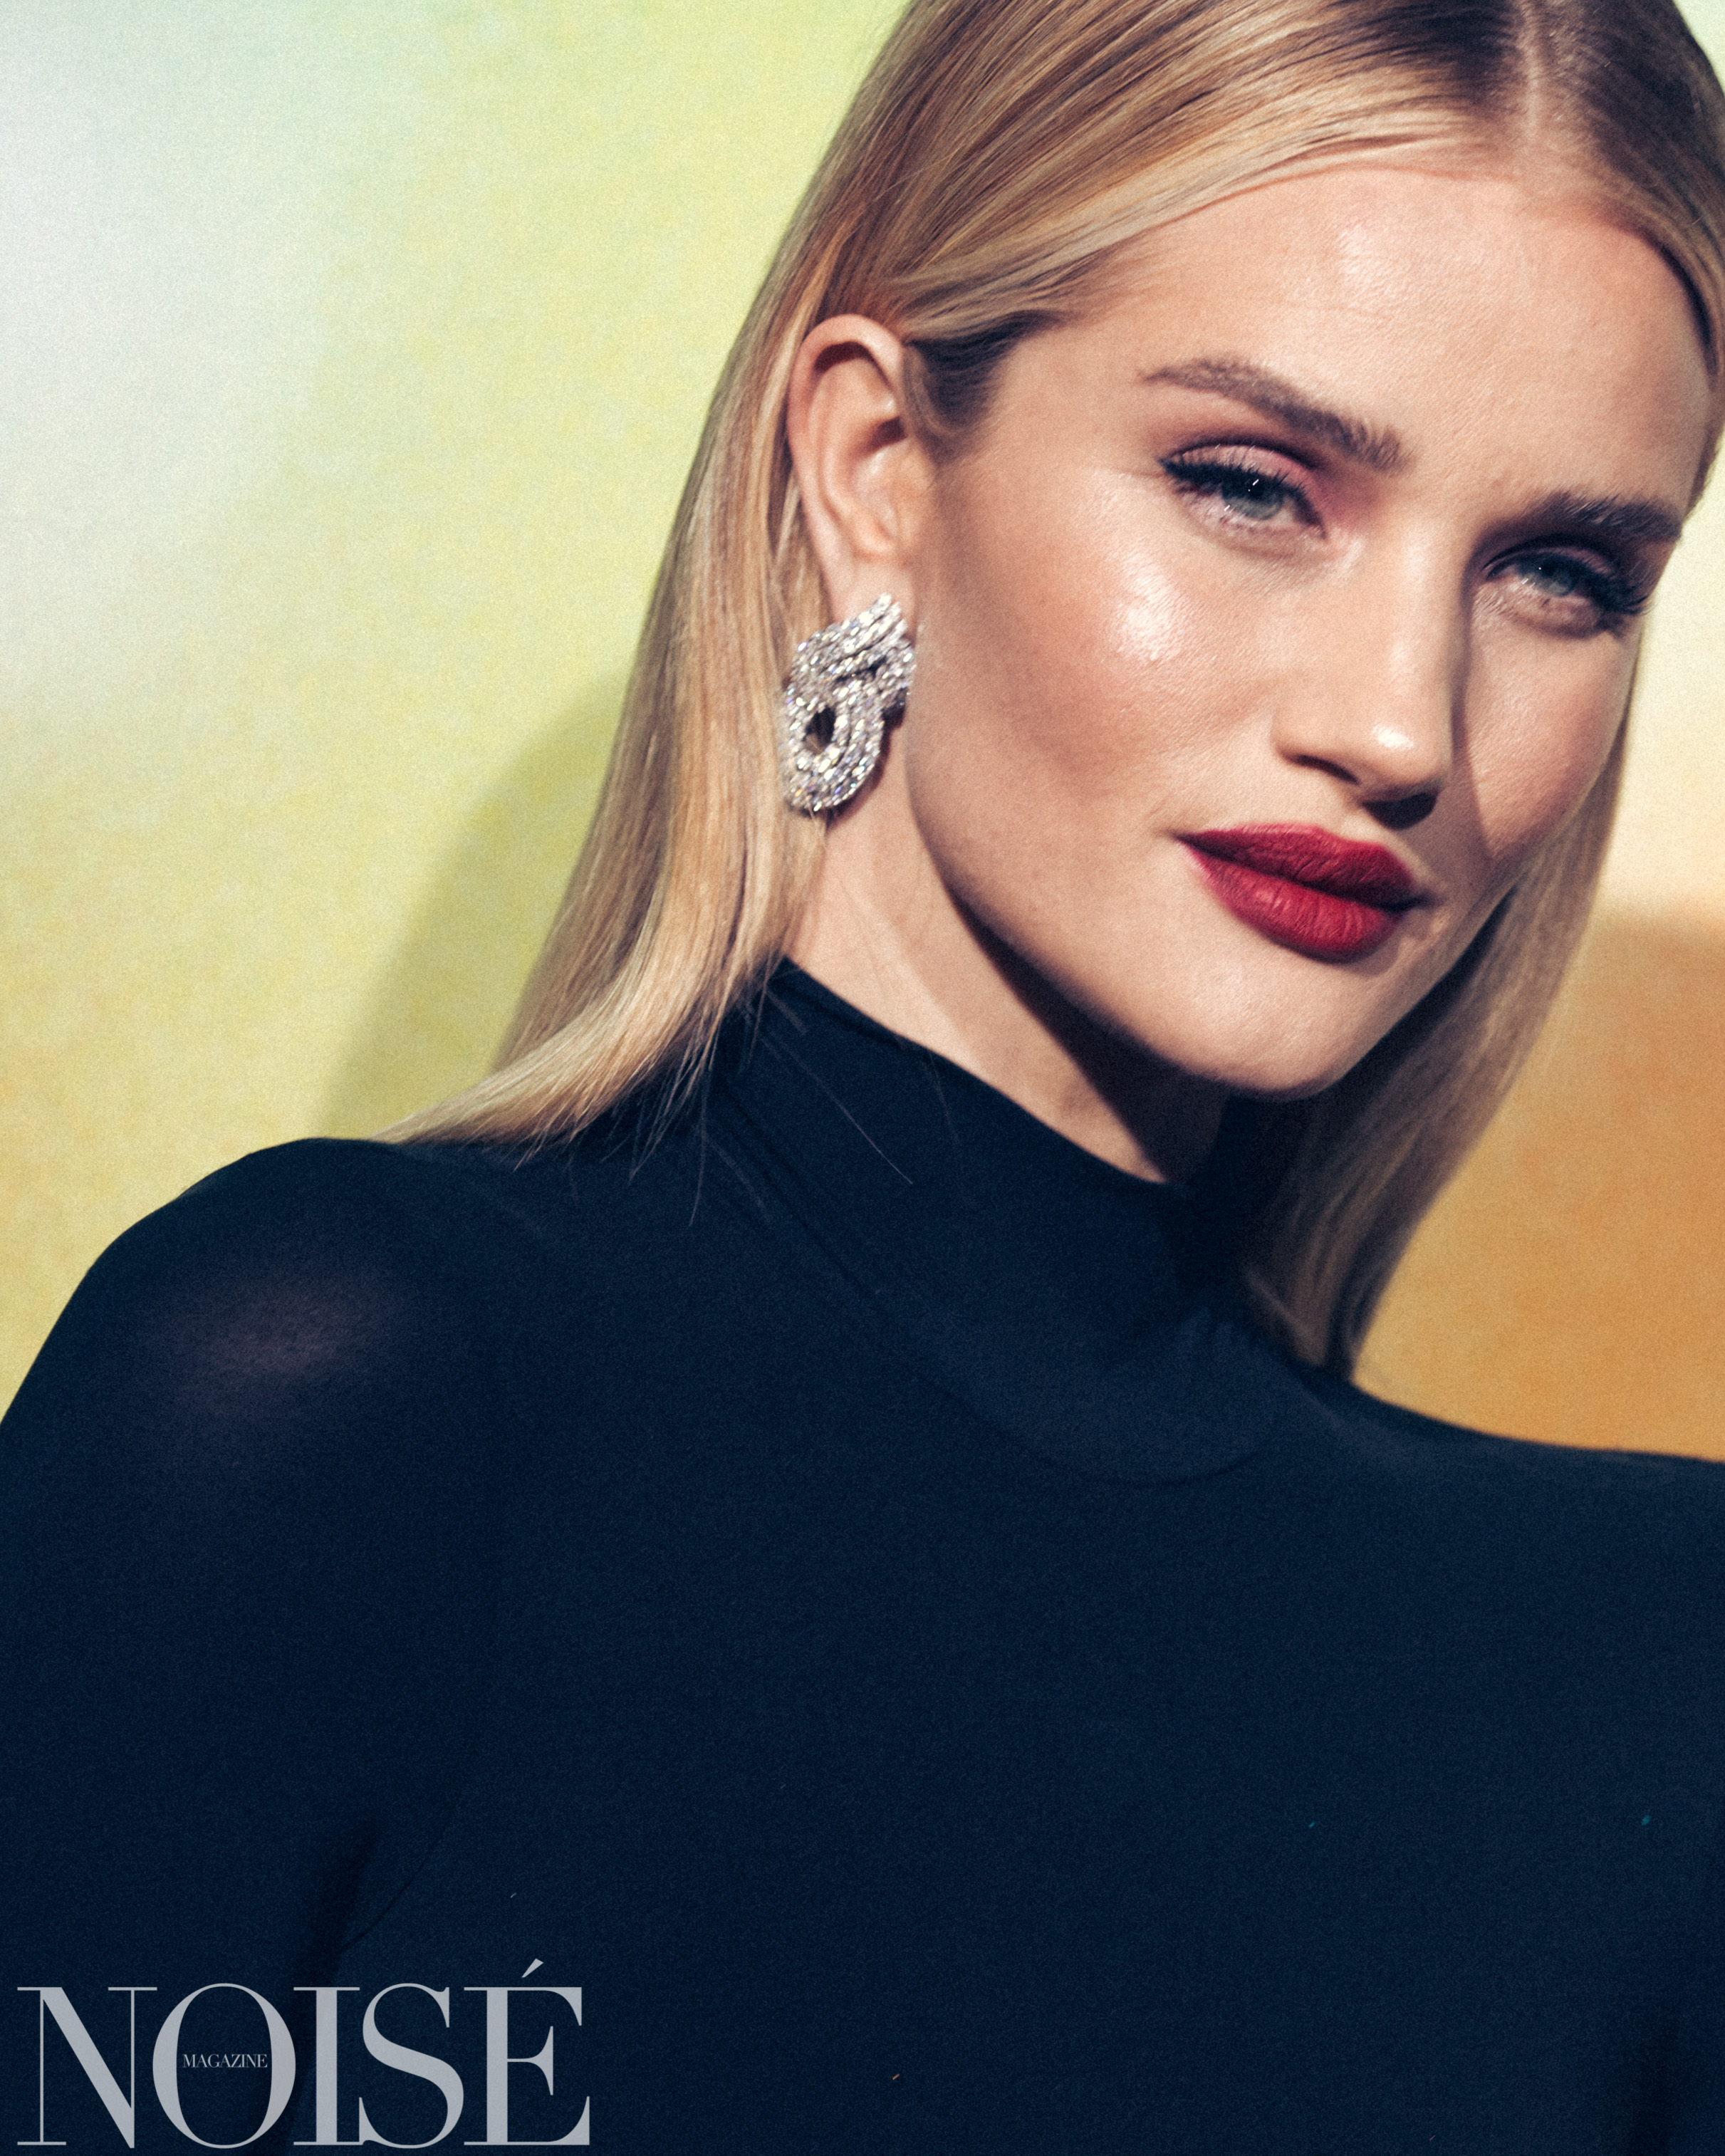 Rosie HW wearing The Row at BoF 500 gala, Photograph by Siyu Tang